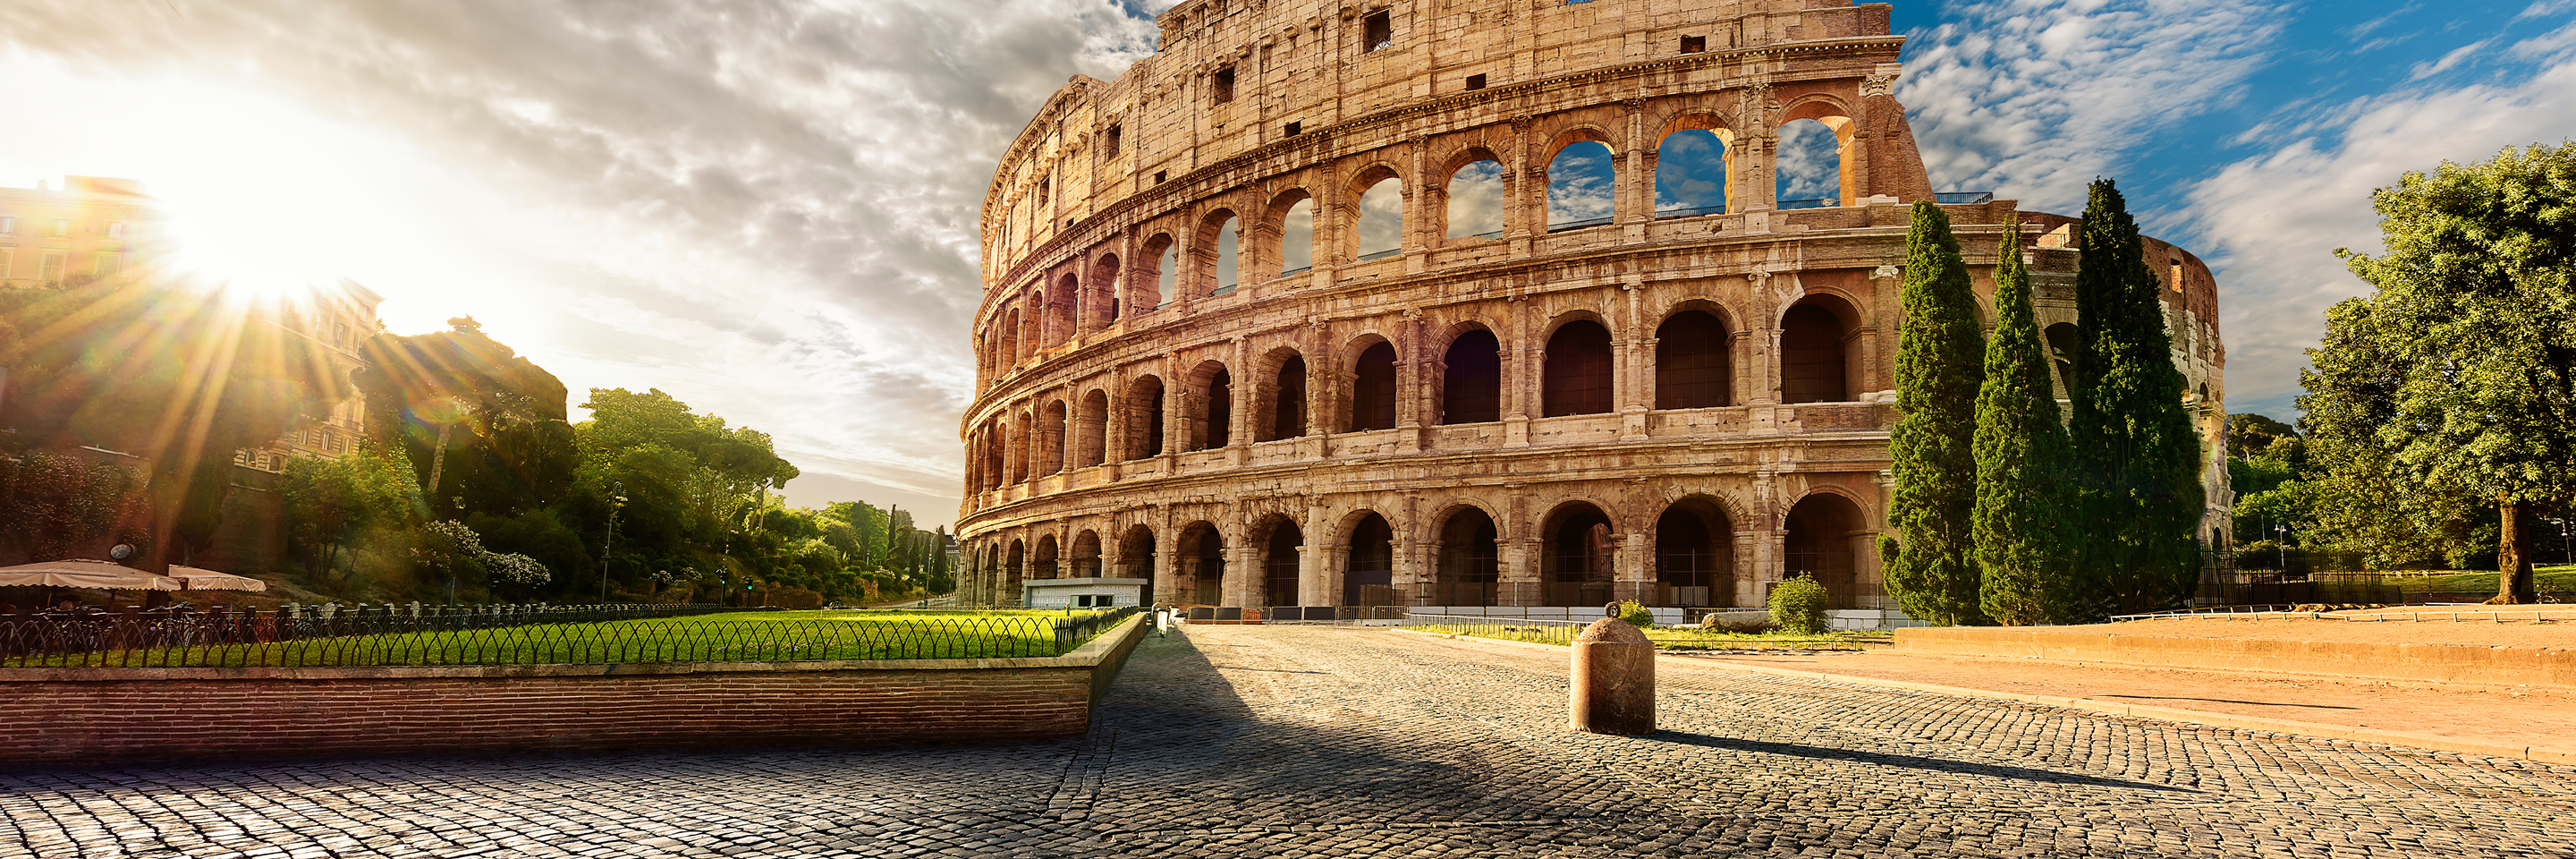 A Culinary Experience in Grand France with 3 Nights in Venice & 3 Nights in Rome (Northbound)